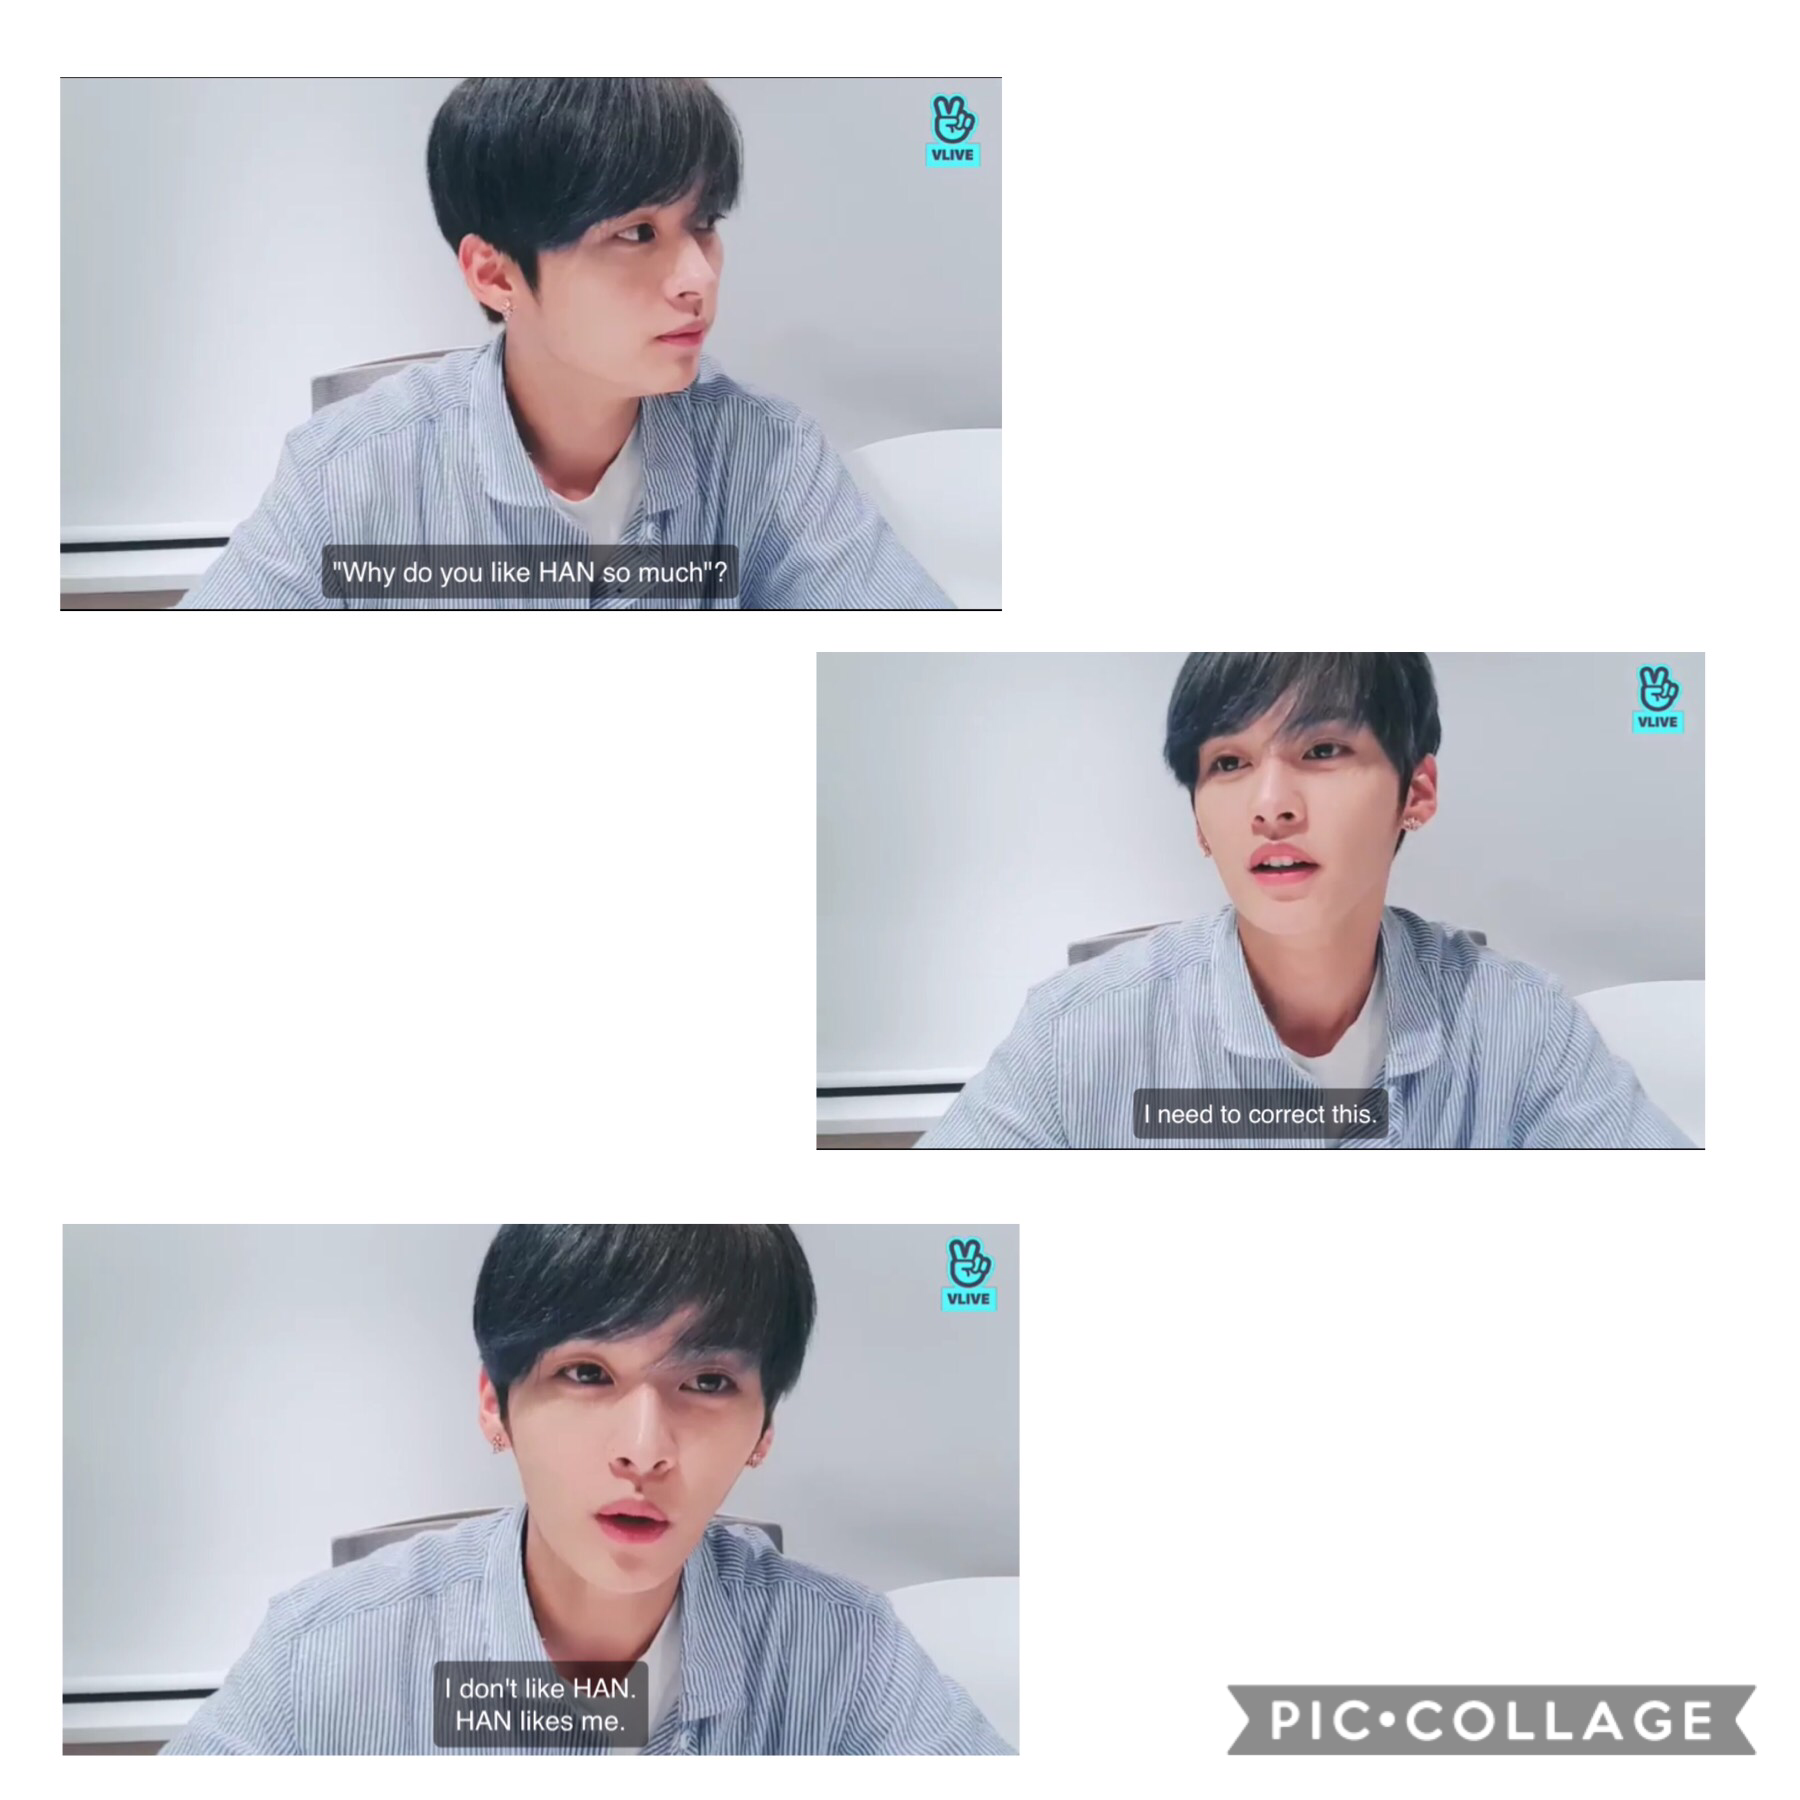 Jisung got exposed lol, Minho said next time he would bring something fun. Maybe it will be the Minsung Vlive that all Minsung shippers have been waiting for.